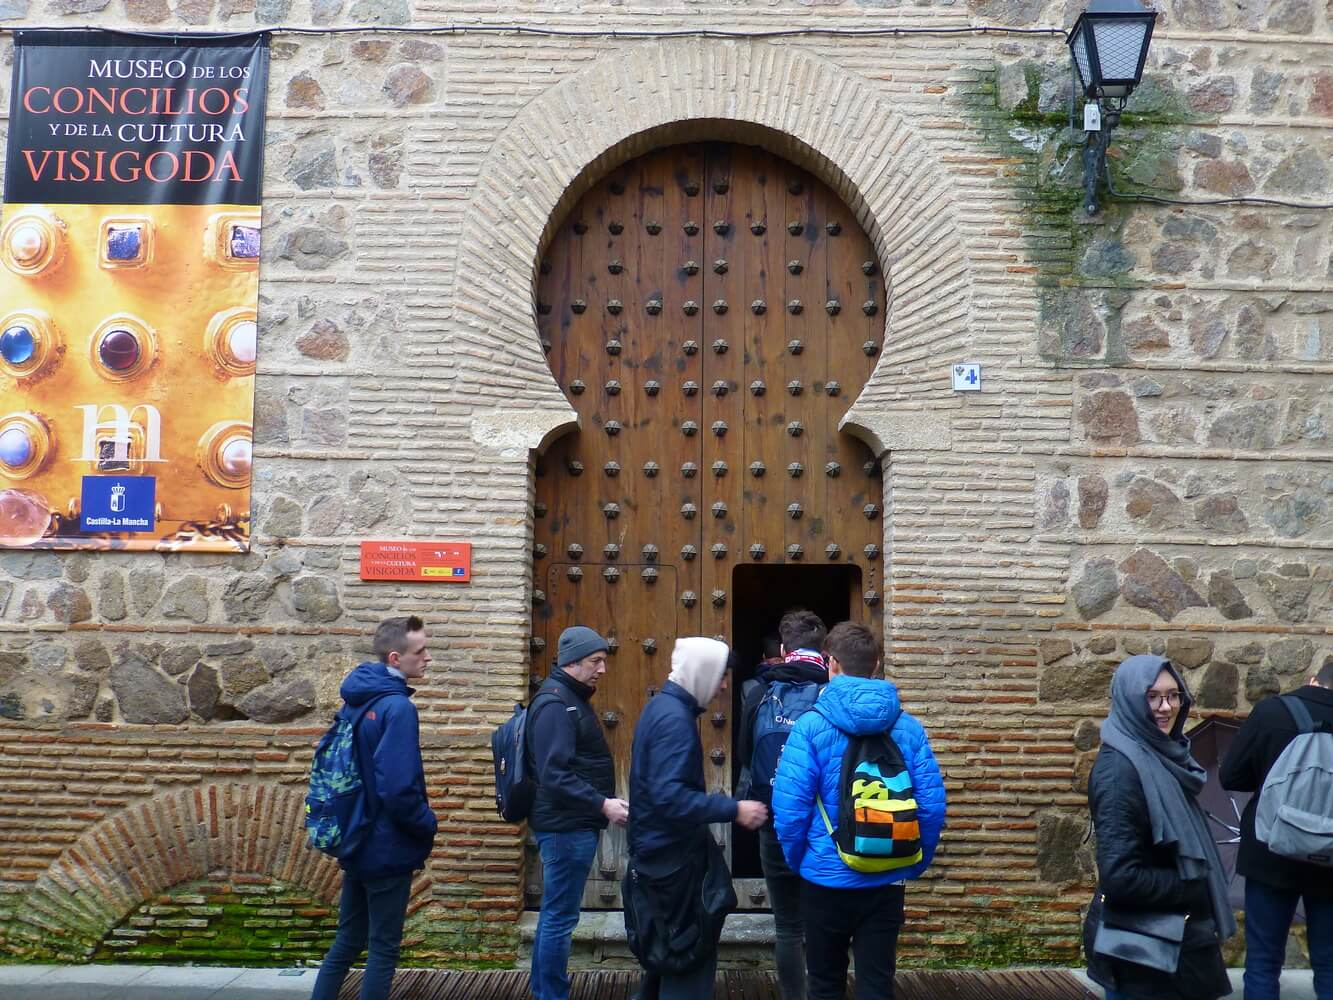 Visit of students of Manchester Grammar School, Museum of Visigothic Councils and Culture